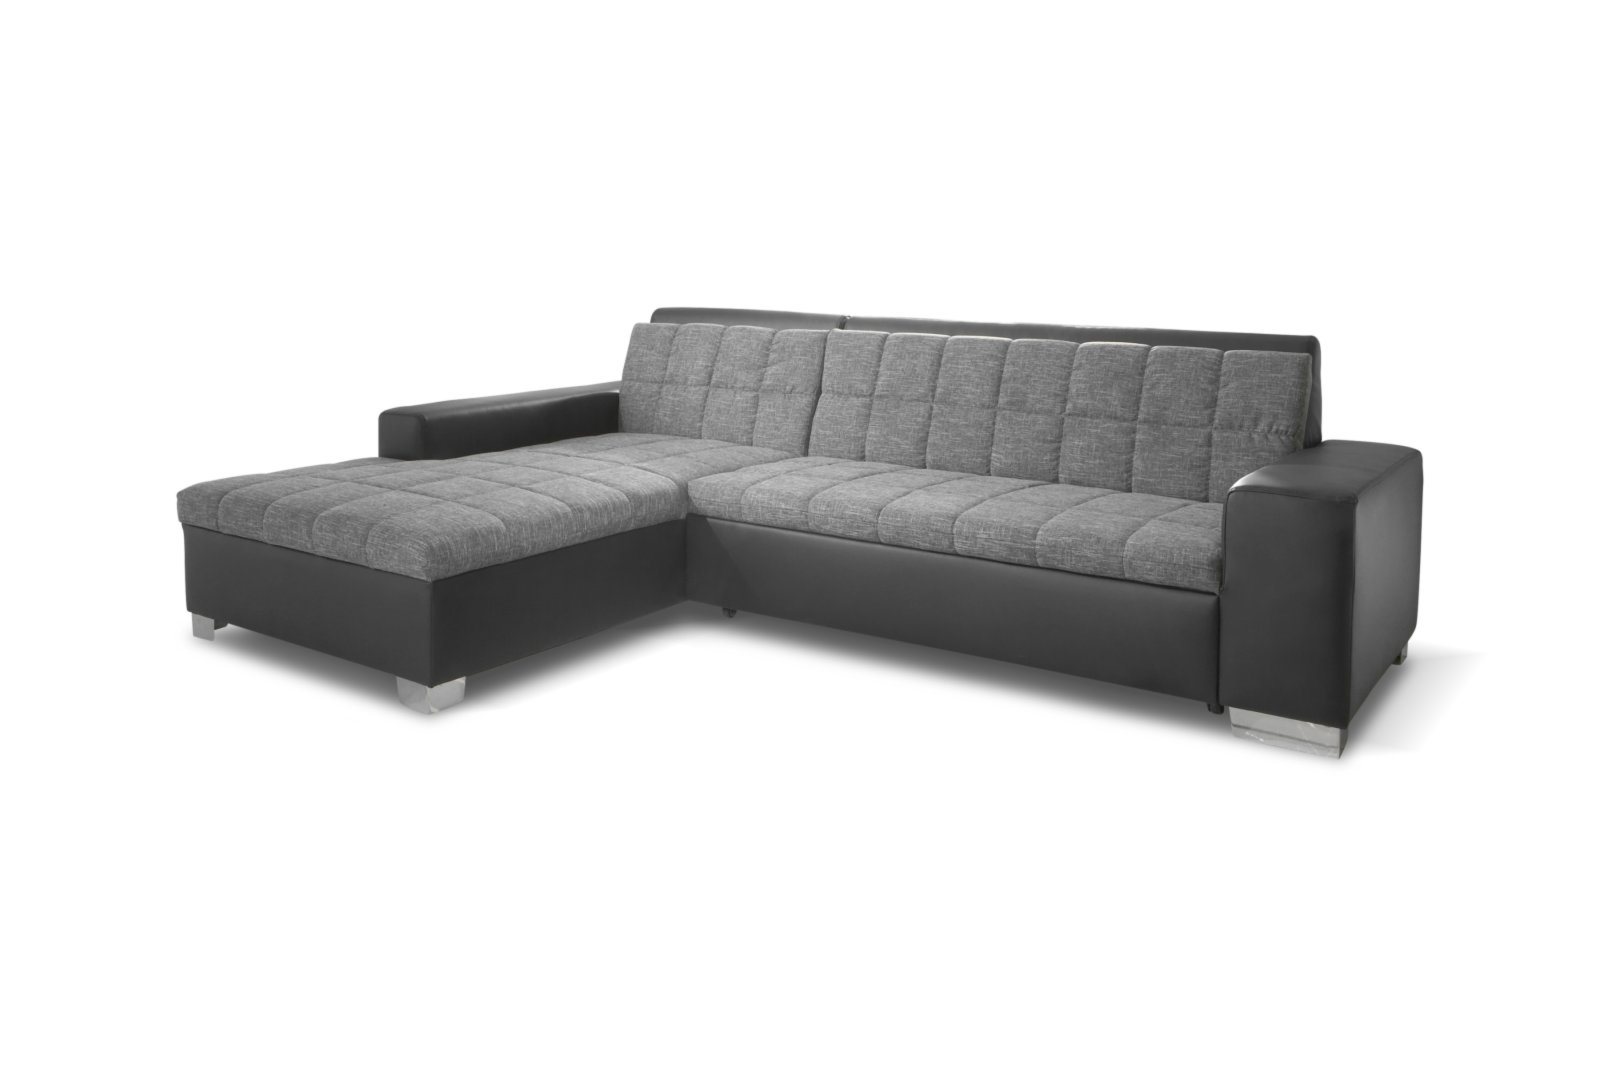 Polsterecke grau schwarz recamiere links ecksofas l for Sofa l form grau